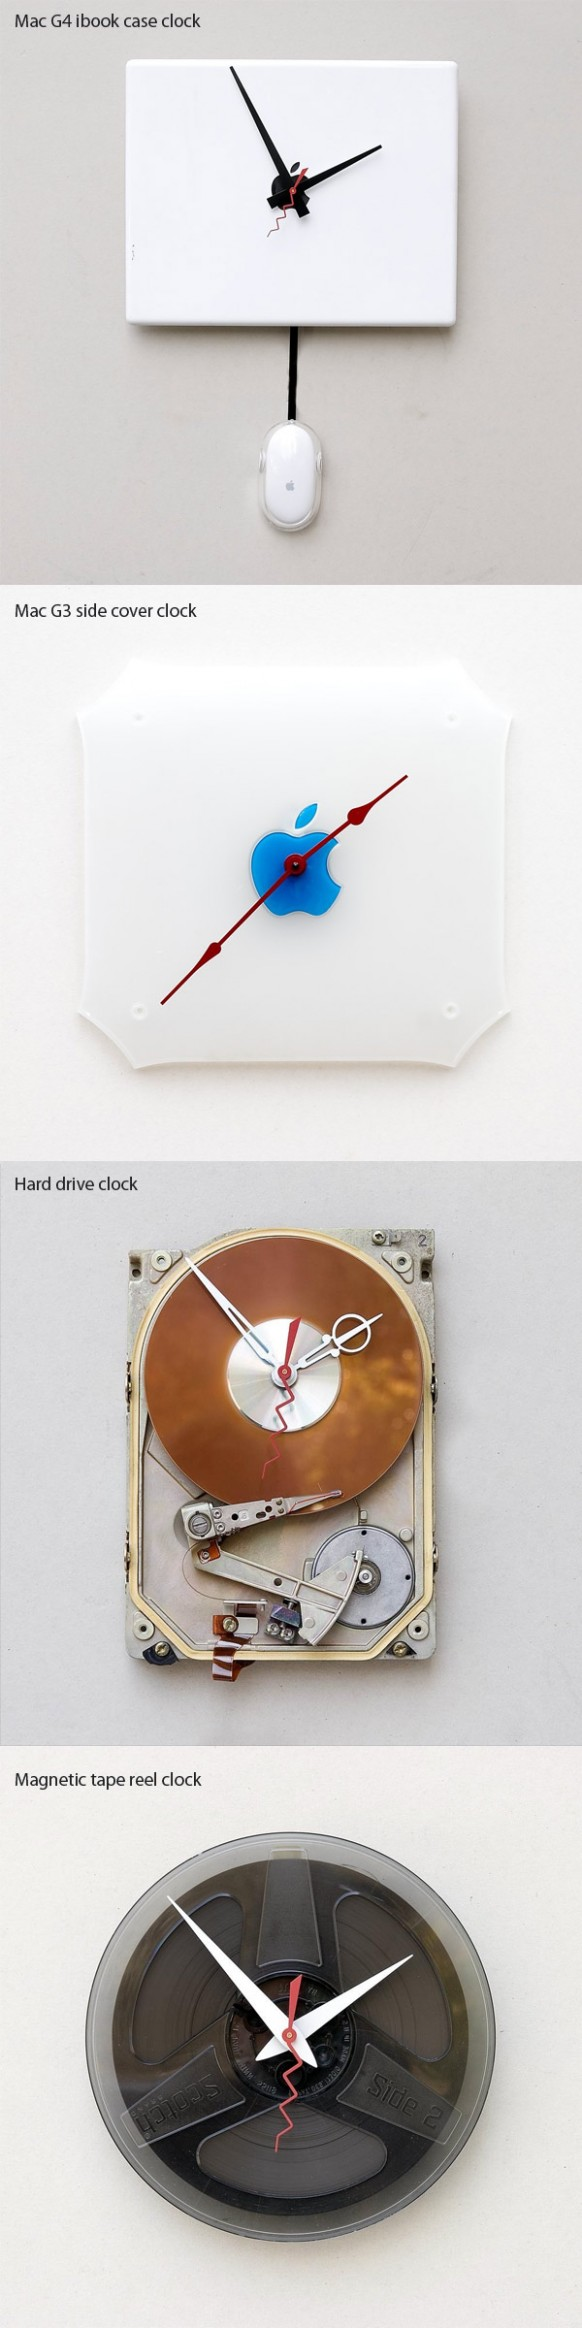 geeky-clocks